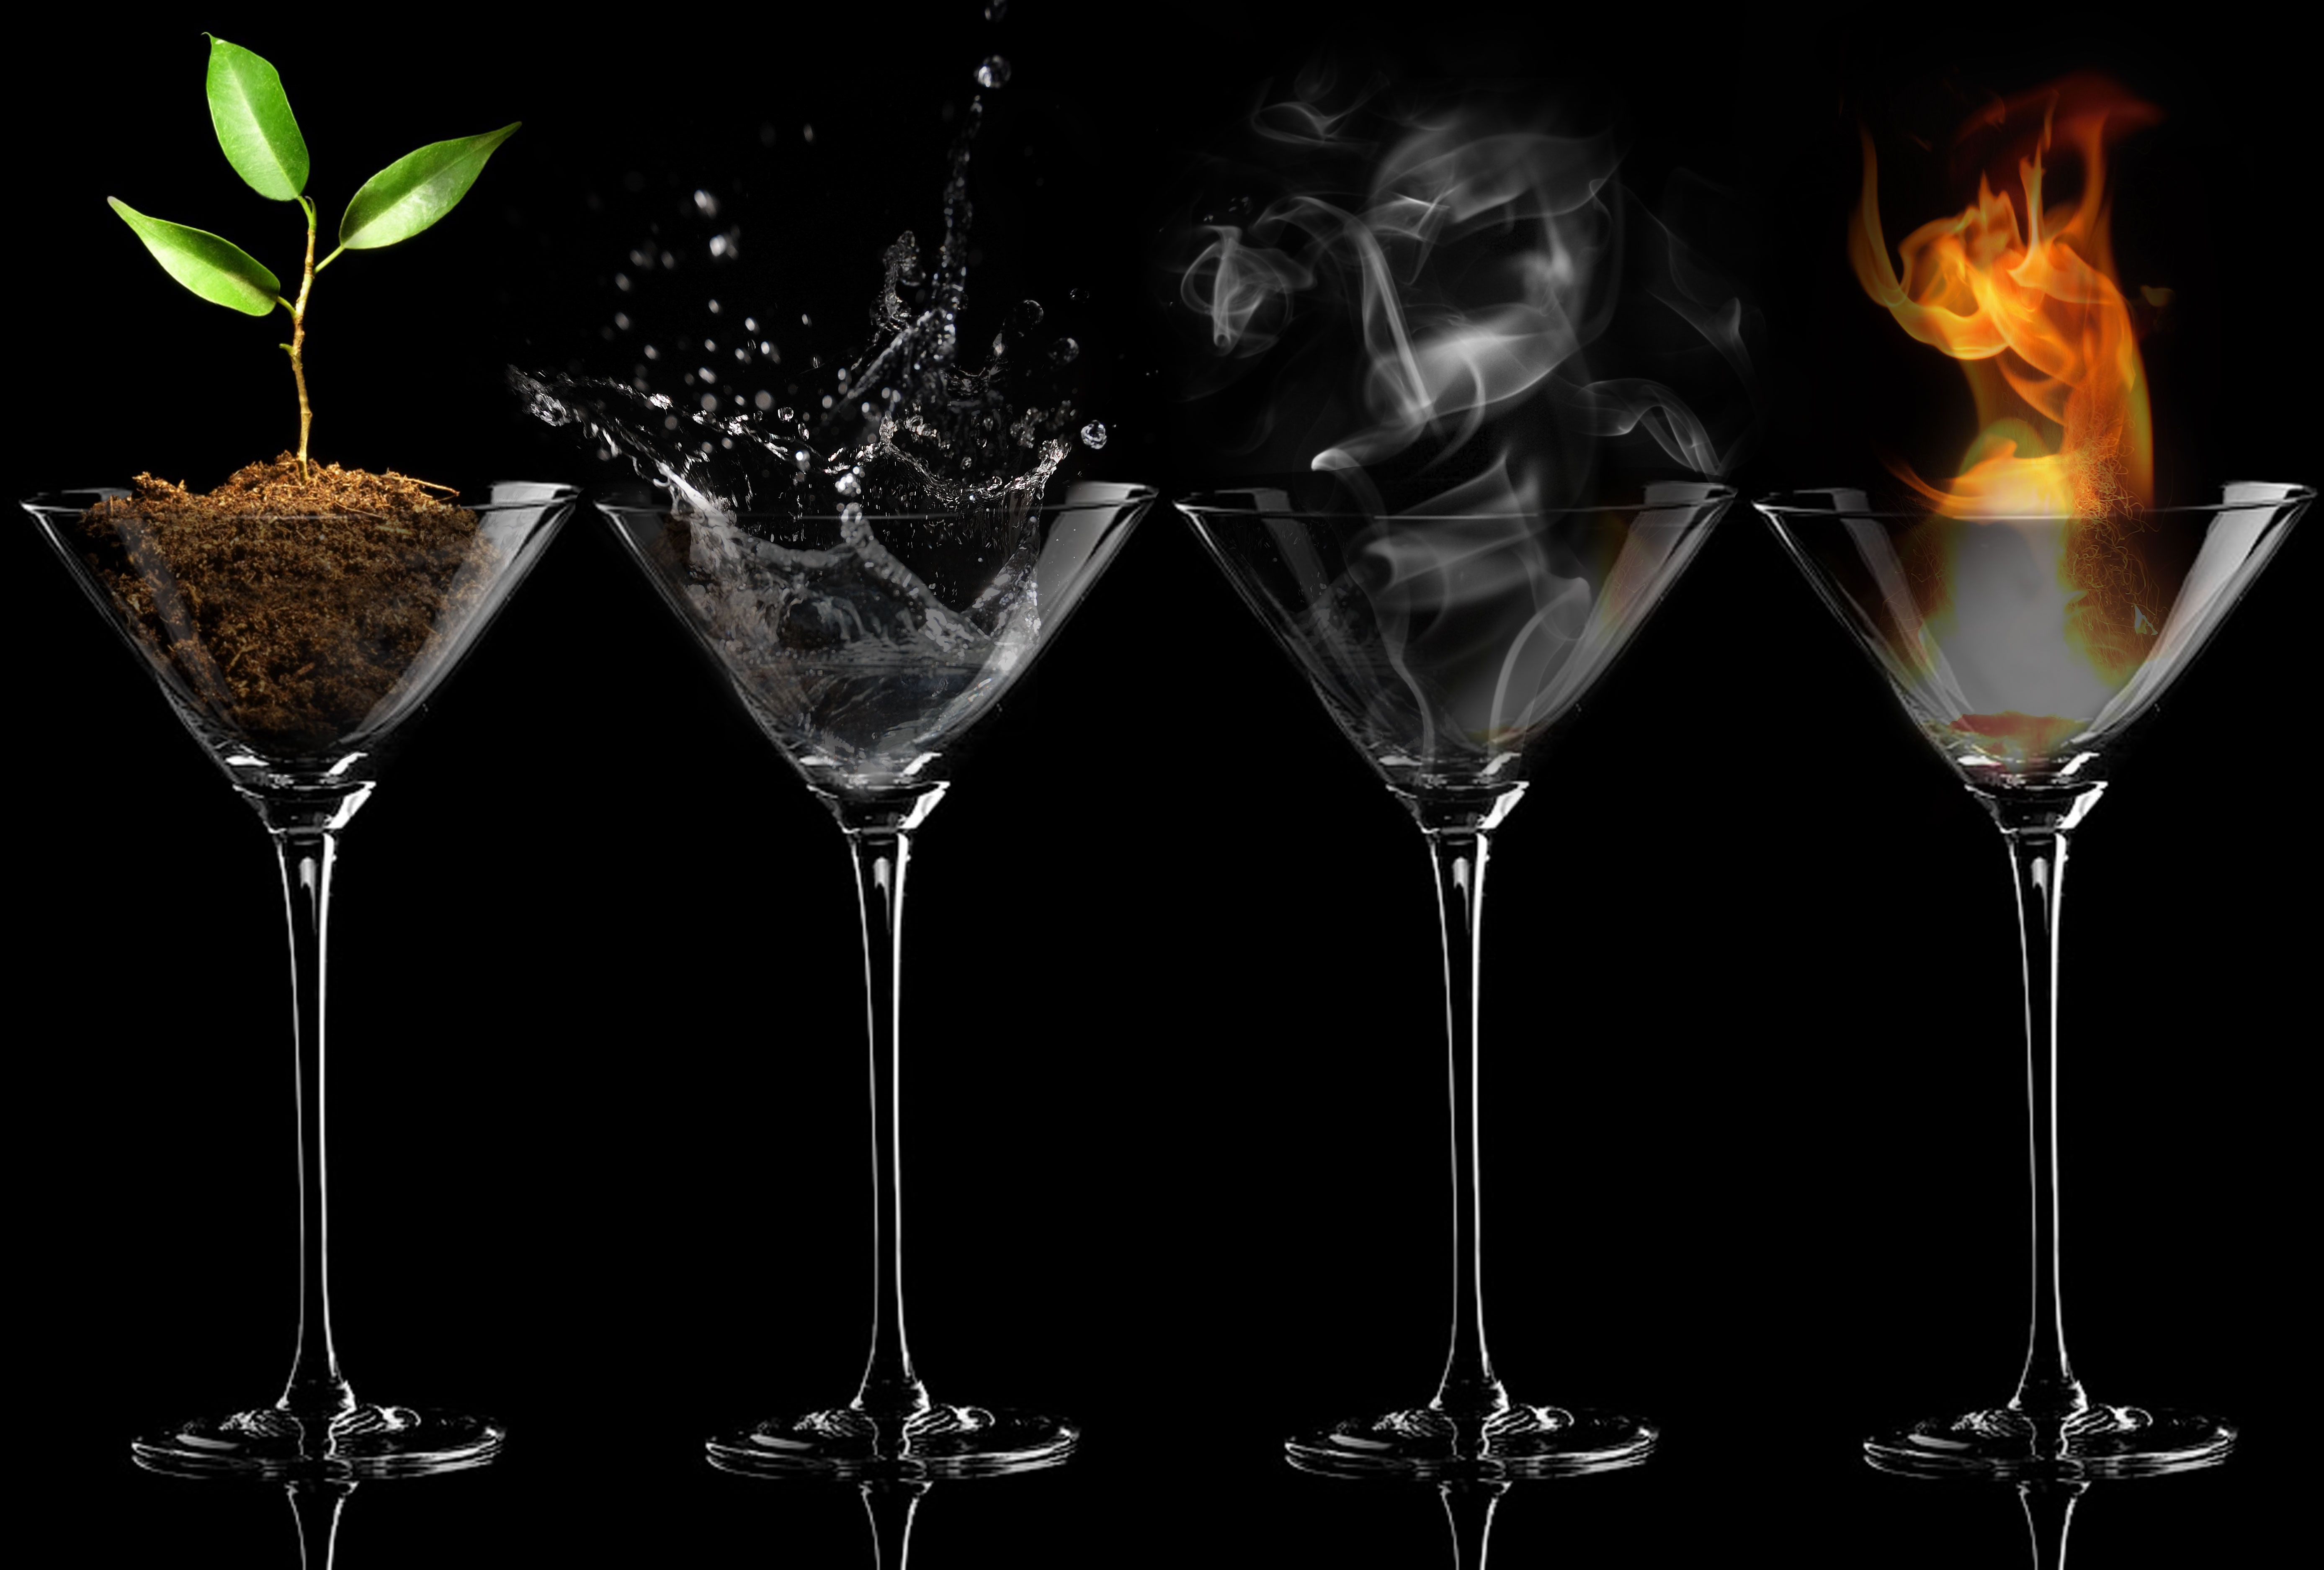 5 Awesome Earth Water Fire Air Elements Wallpapers Elements